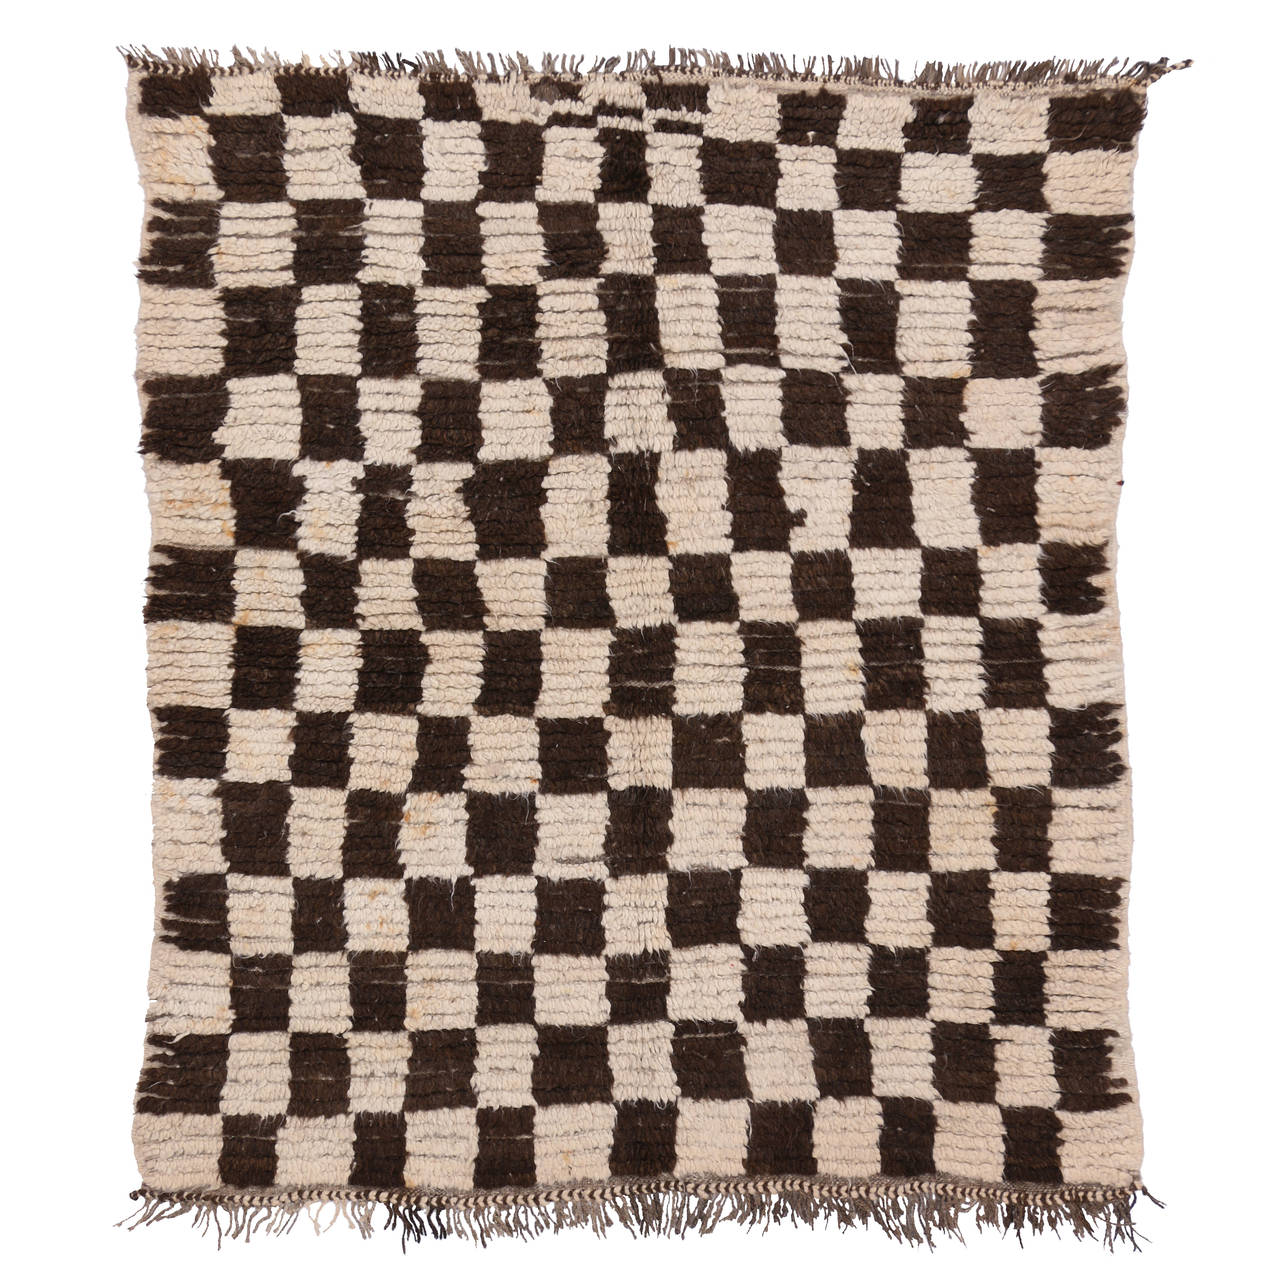 Design Retro Rug mid century modern berber moroccan rug with retro checkerboard design 1